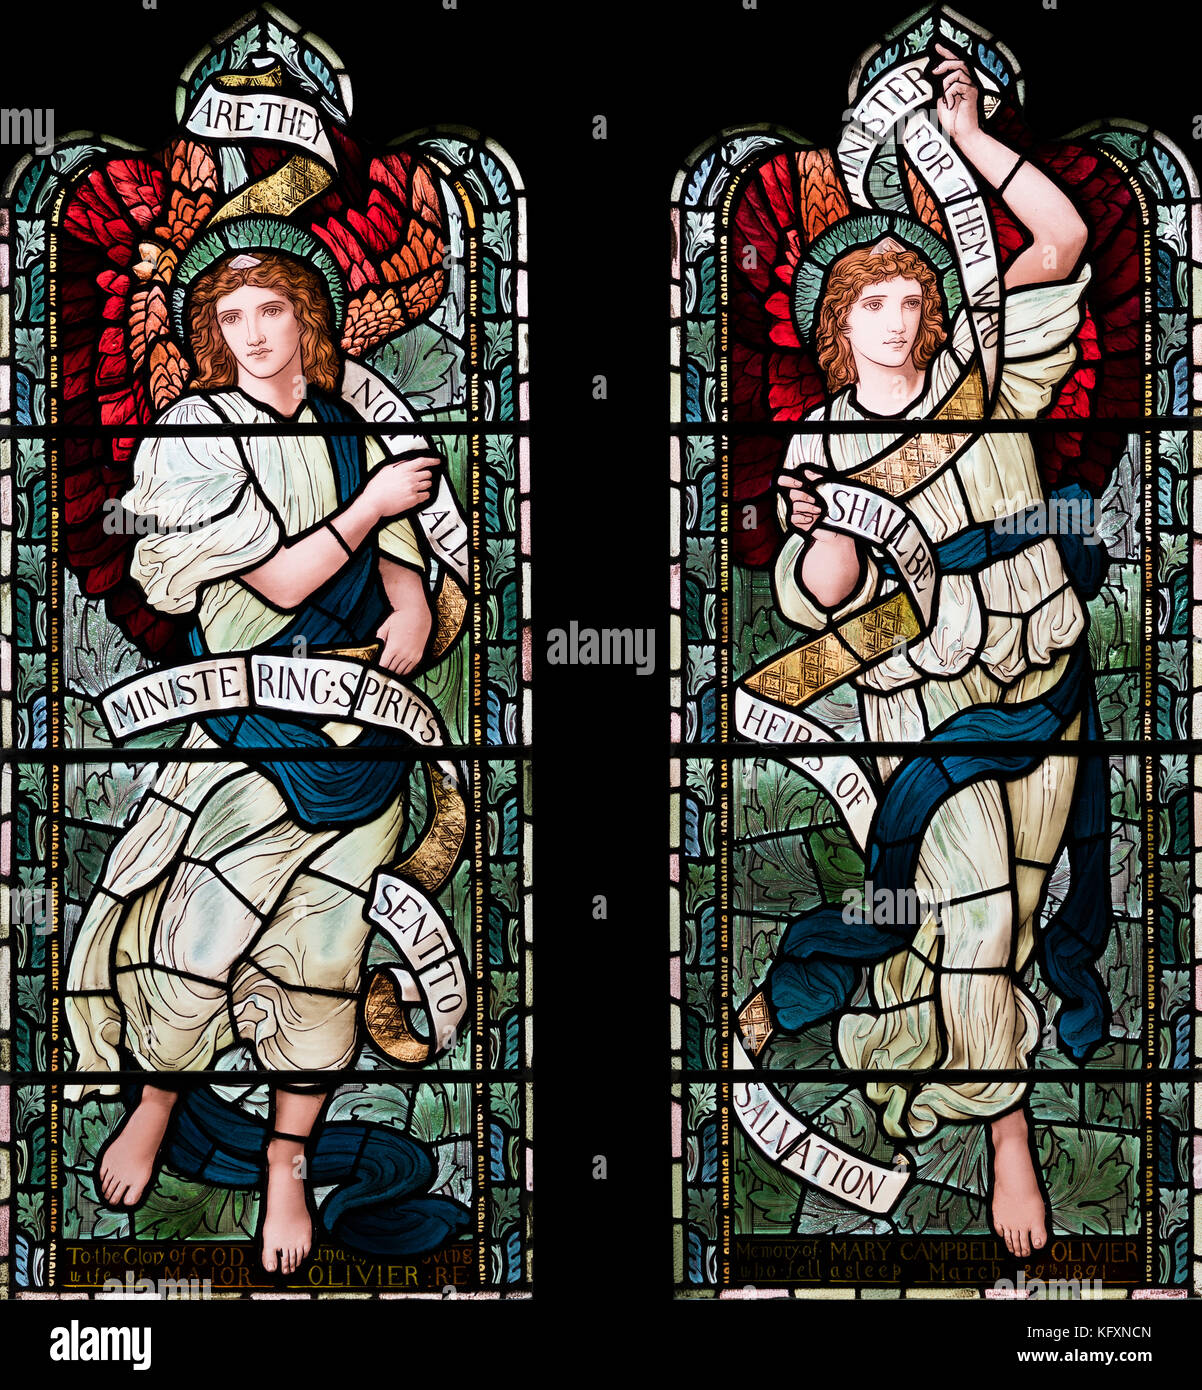 Ministering Spirits proclaiming Salvation by Henry Holiday, St. Oswald's Church, Grasmere, Cumbria, UK - Stock Image